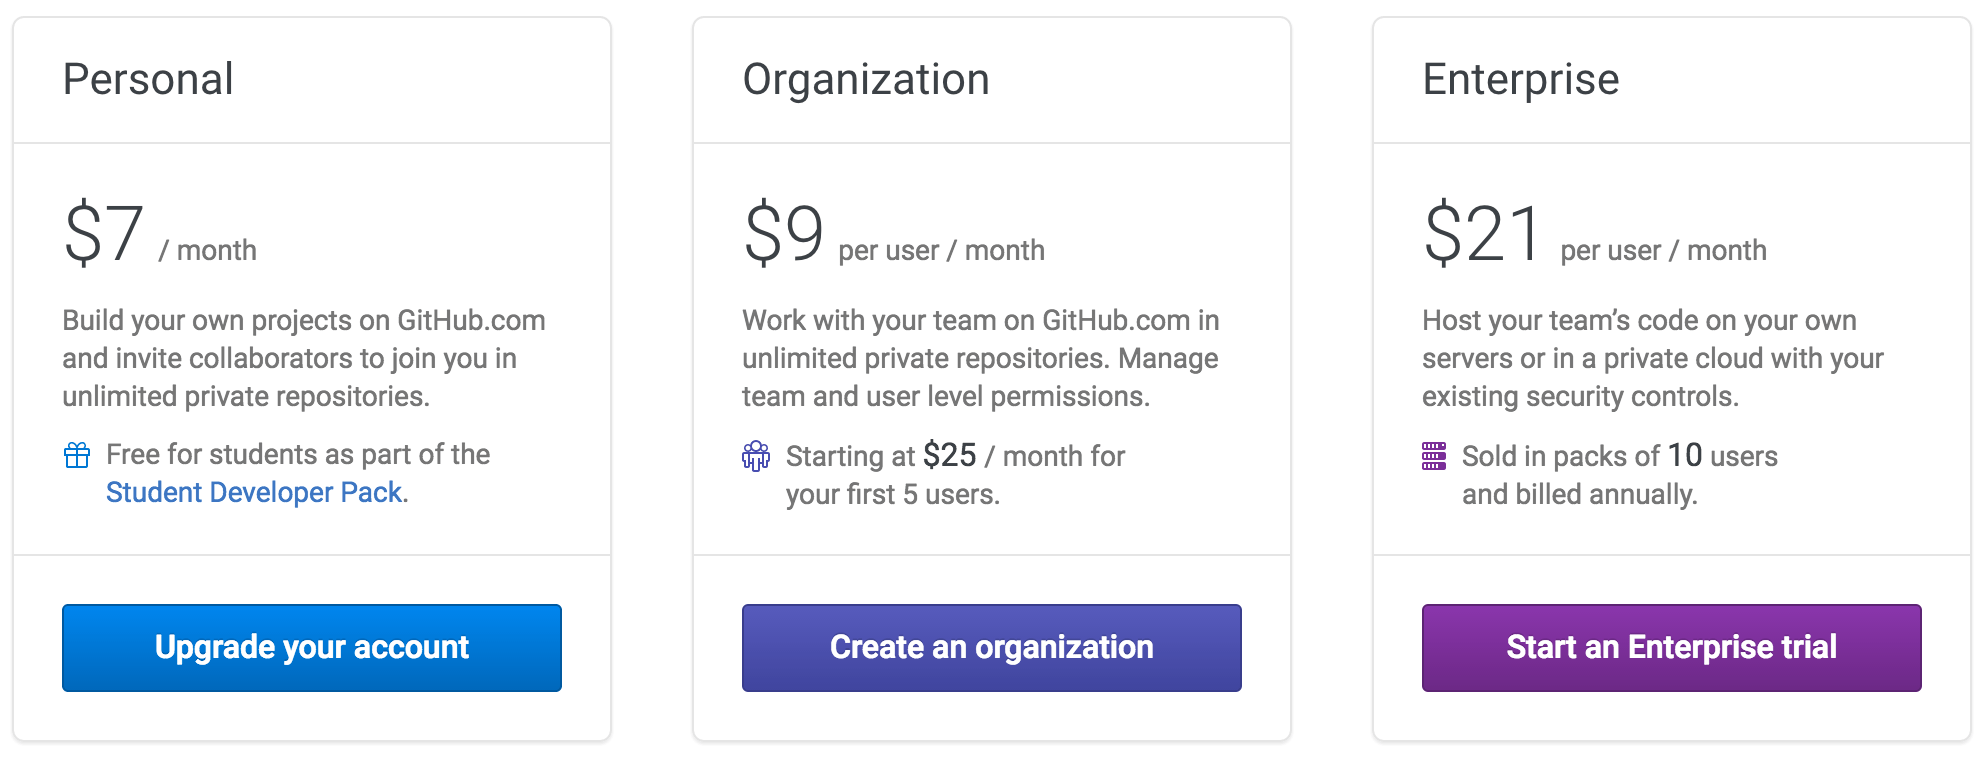 GitHub Introduces Unlimited Private Repositories. Hikes Prices for Organizations – WordPress Tavern